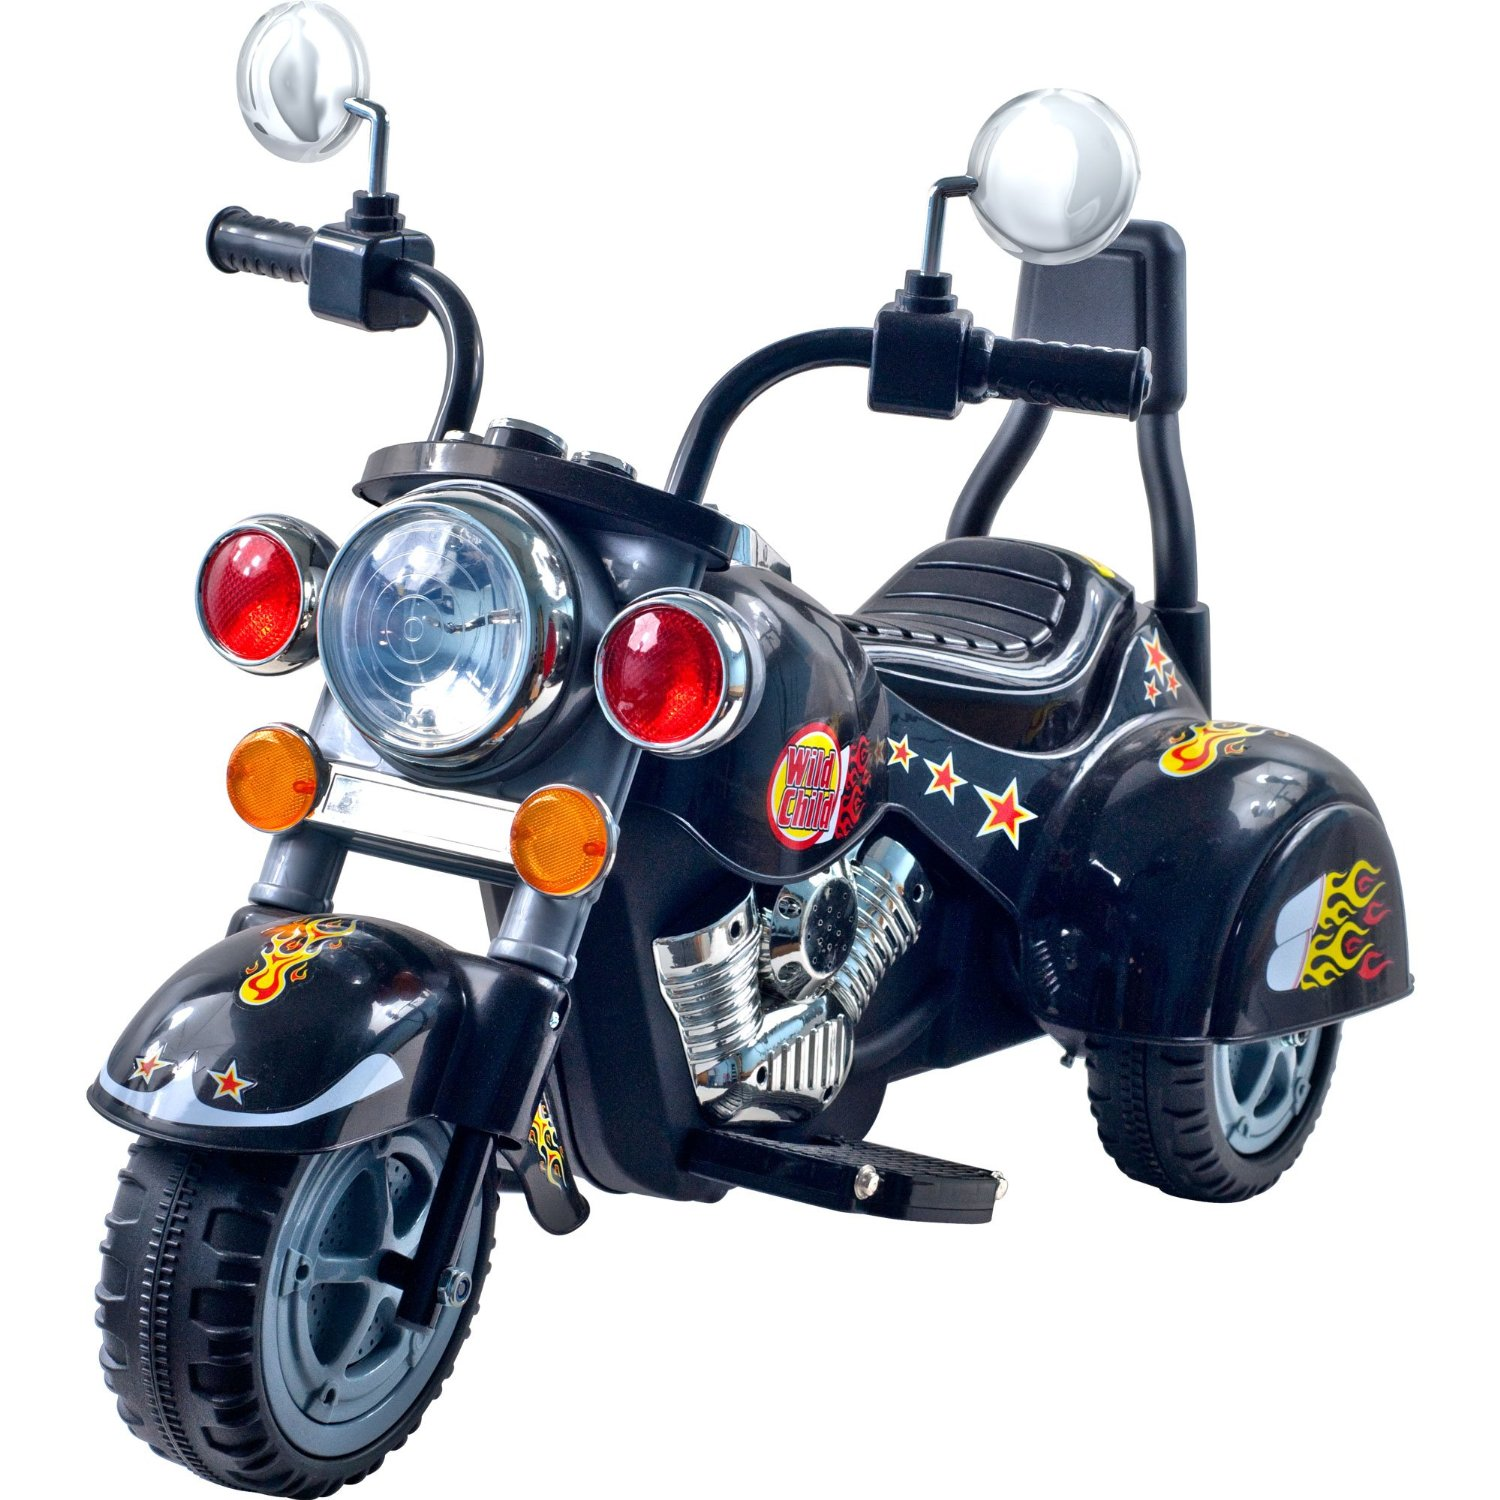 Lil' Rider 6V Harley Style Wild Child Motorcycle